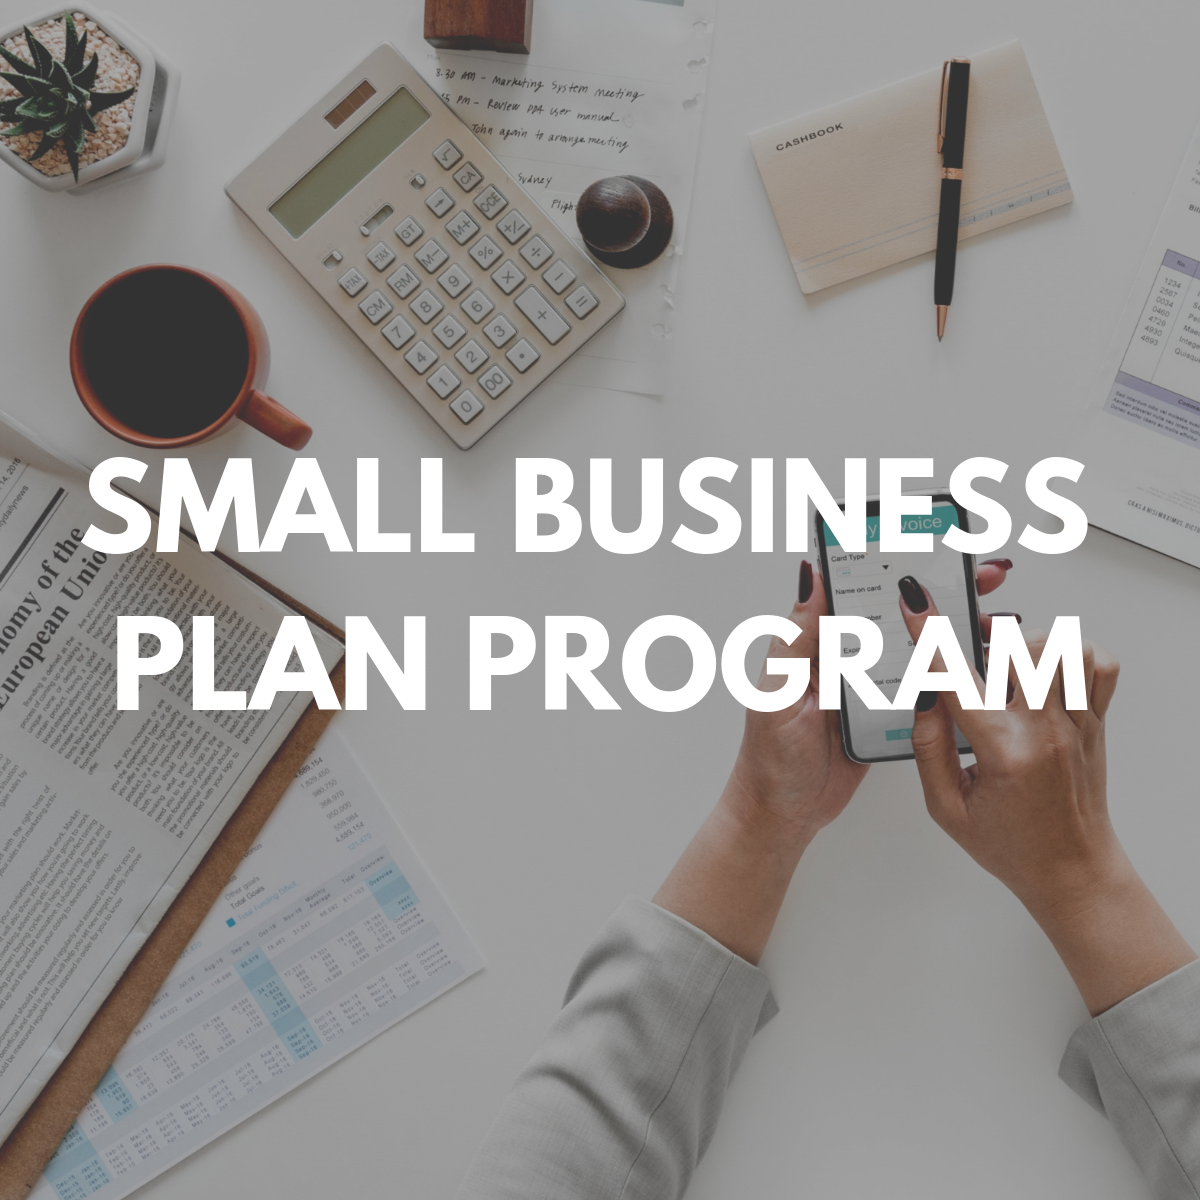 Small Business Plan Program